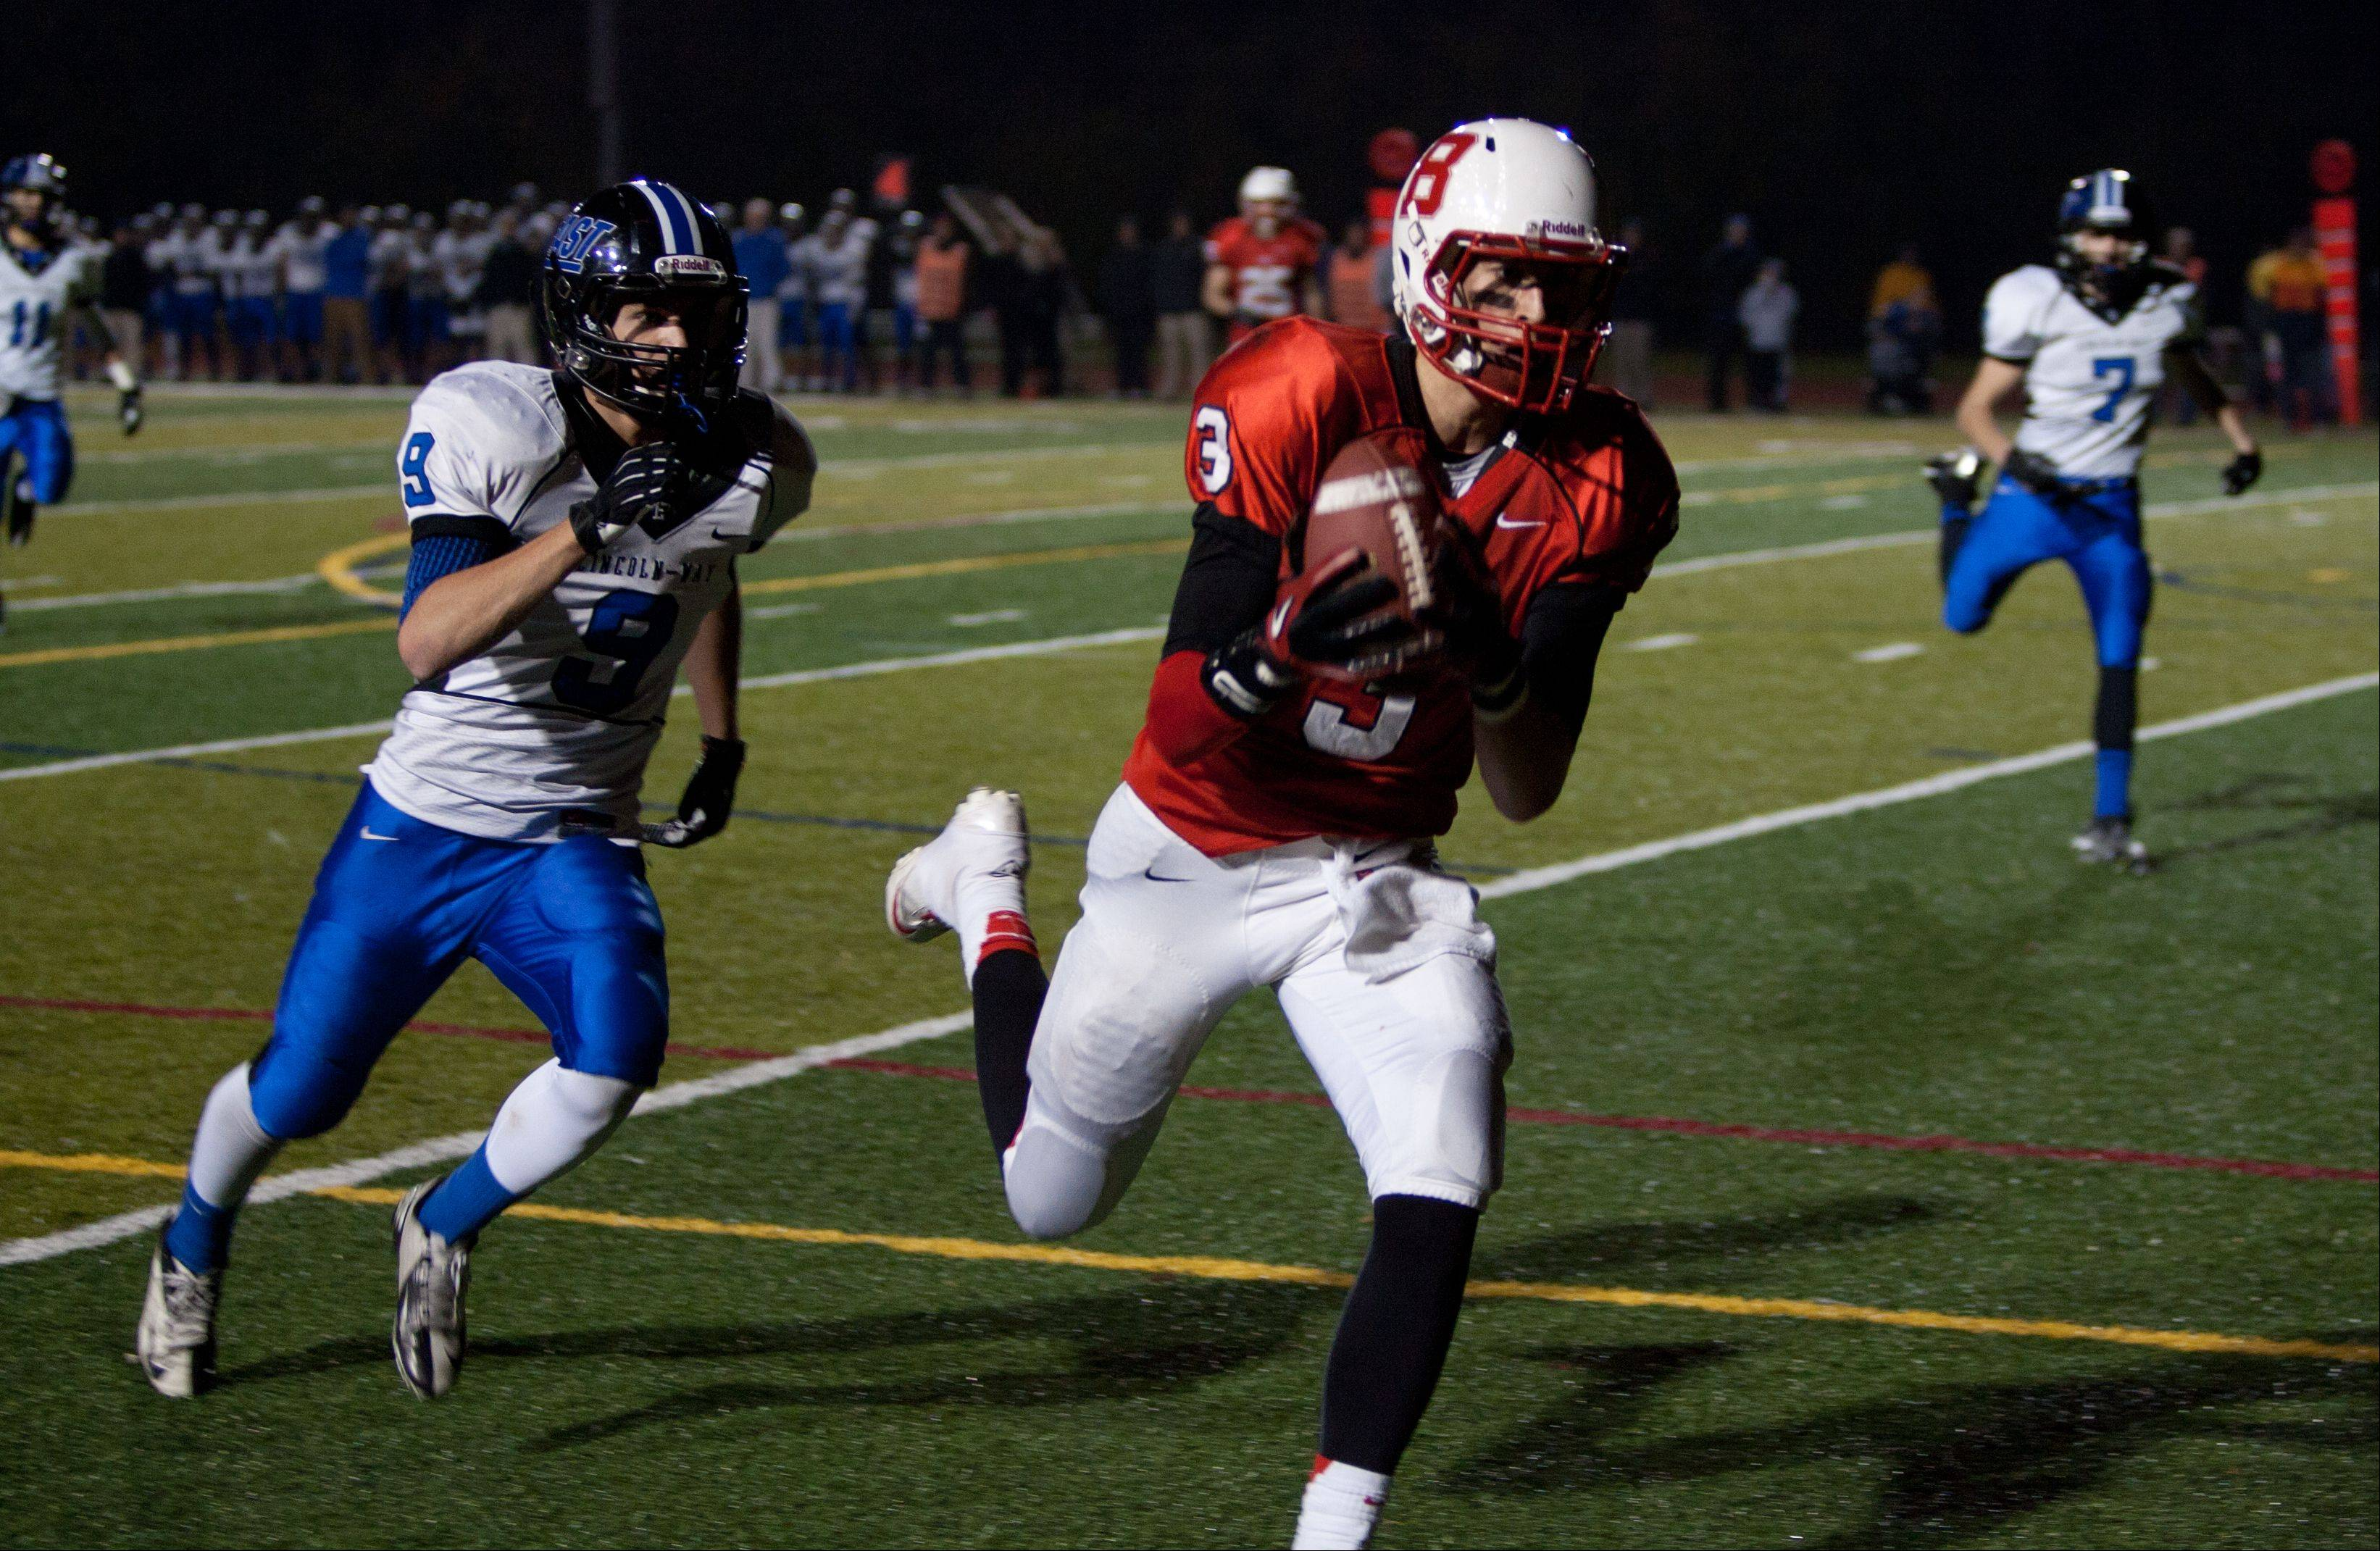 Benet�s Jack Euritt (3), hauls down a fourth down, fourth quarter touchdown pass against Lincoln-Way East.